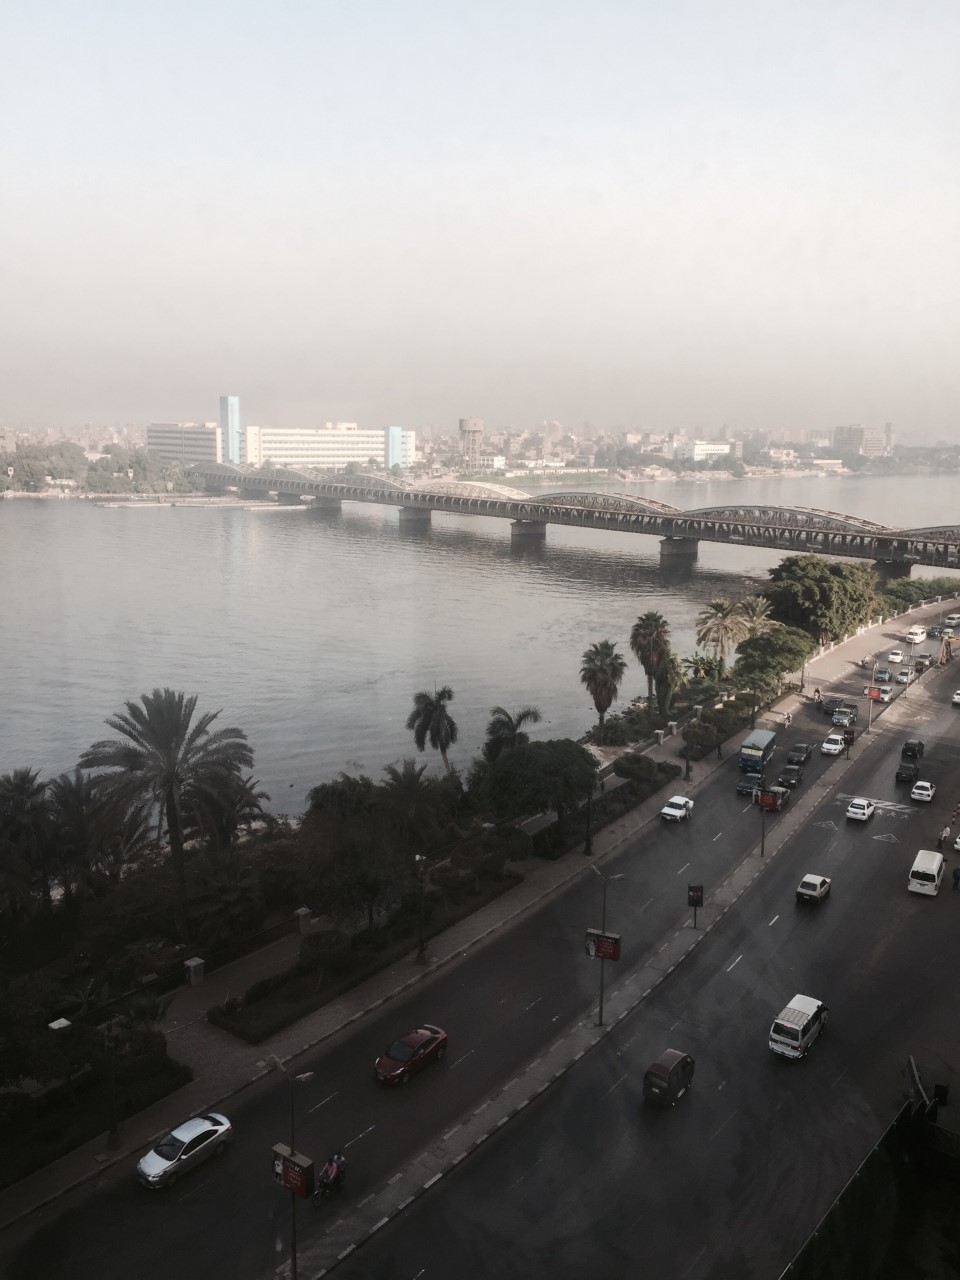 THE RIVER NILE - A major north-flowing river in northeastern Africa as well as the longest river in Africa and in the world.